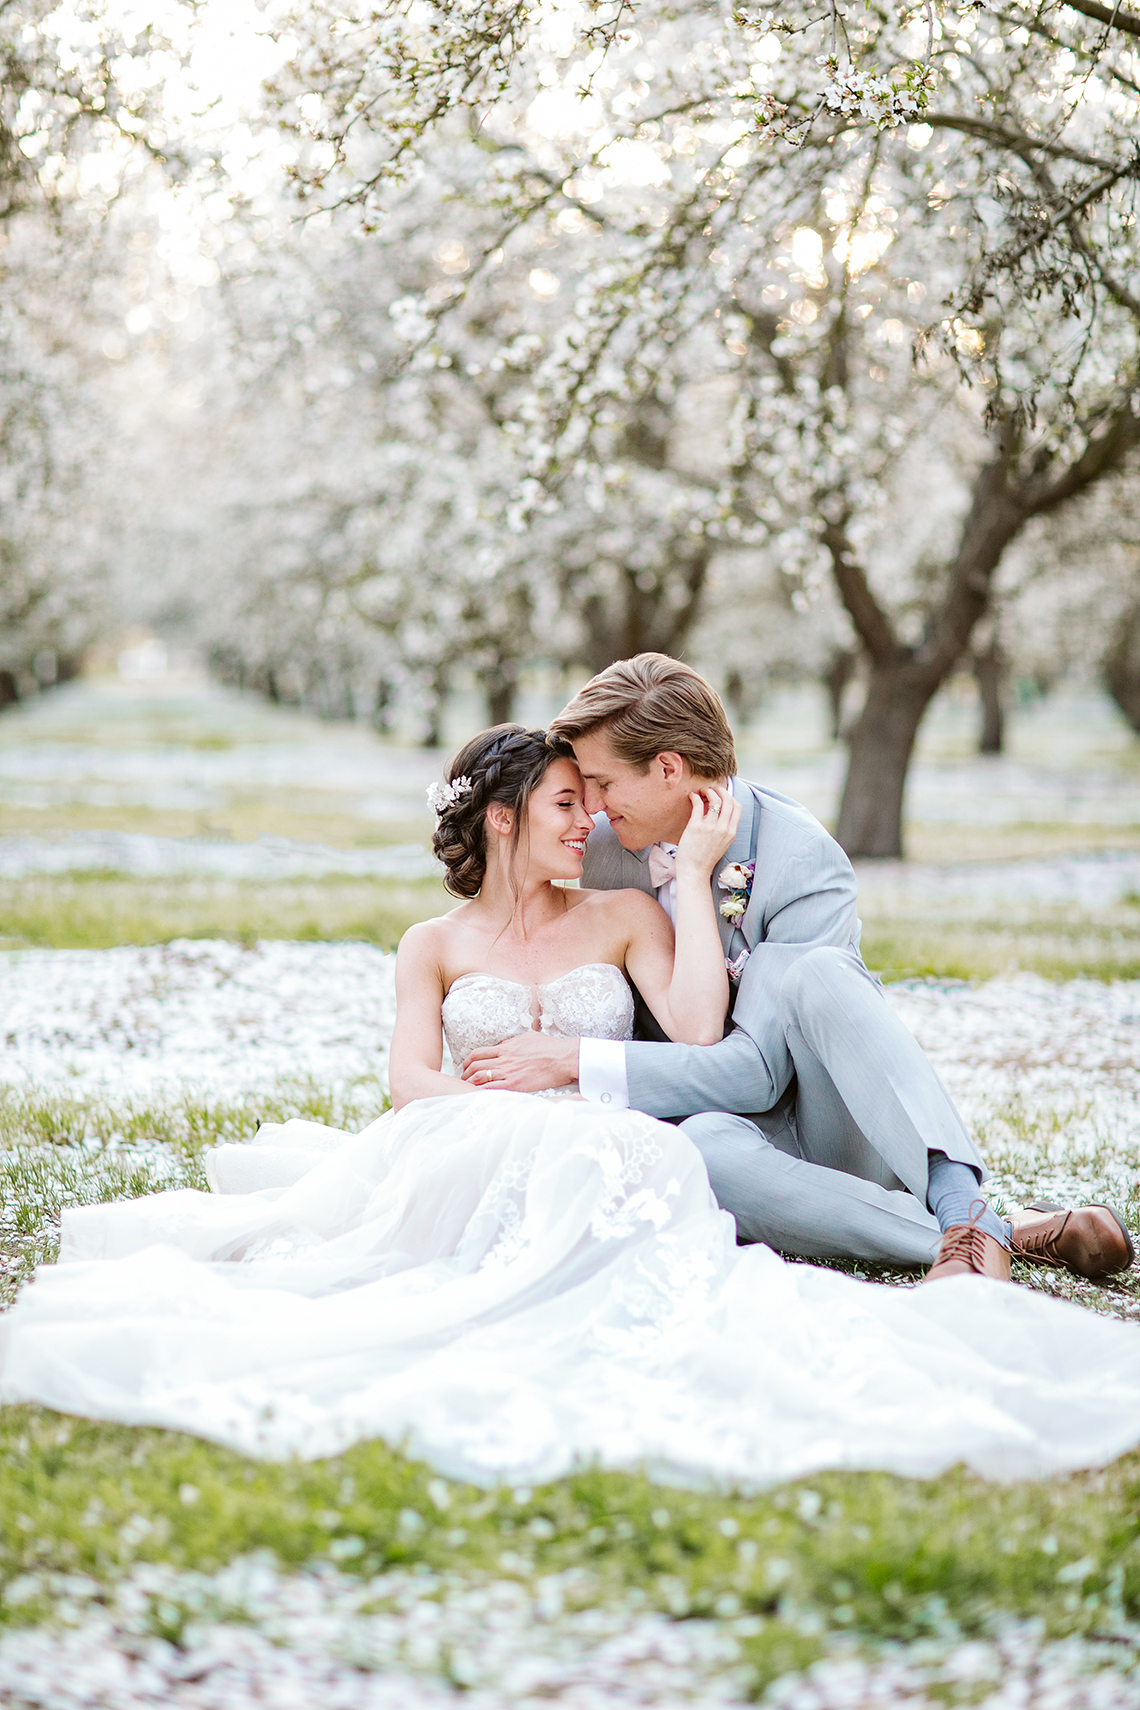 Whimsical Almond Orchard Blossom Wedding Inspiration – Playful Soul Photography 46